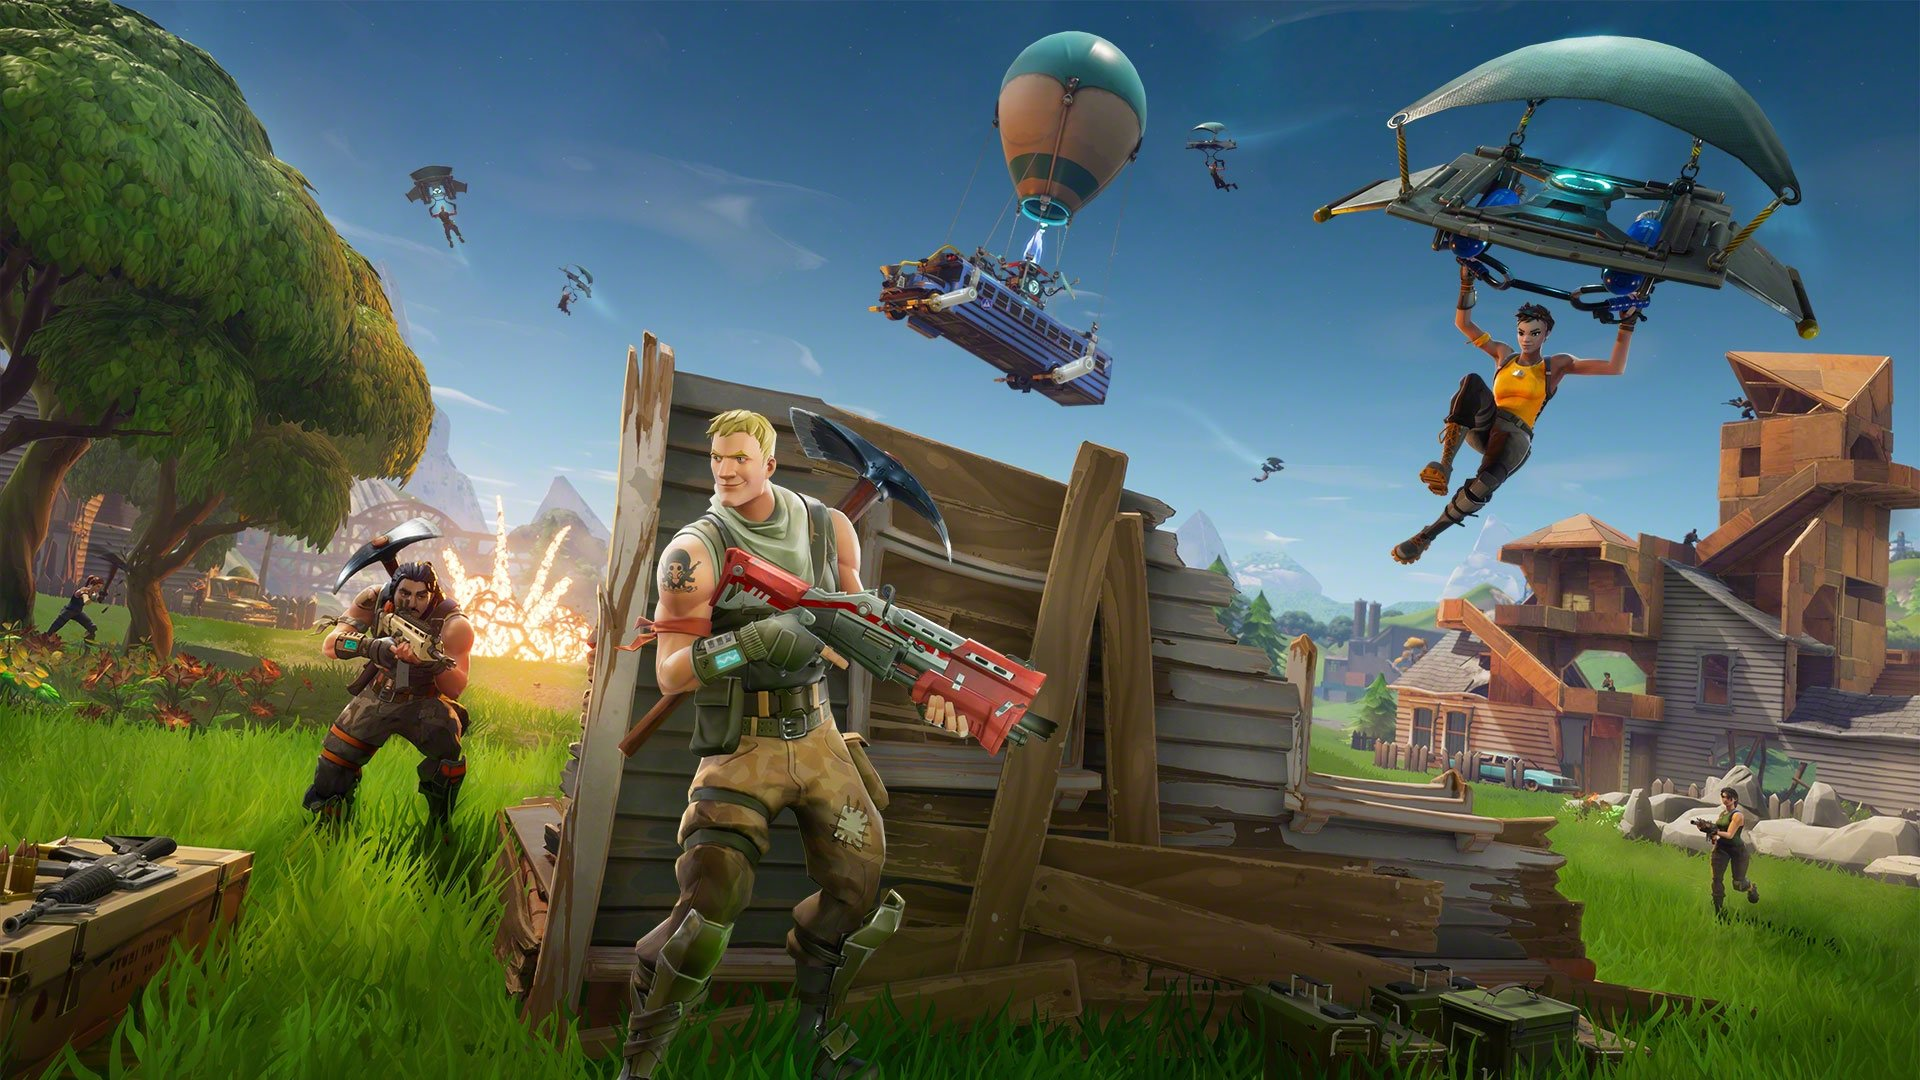 Fortnite Runs At 4k And 60 Fps On Ps5 And Xbox Series X Vgc